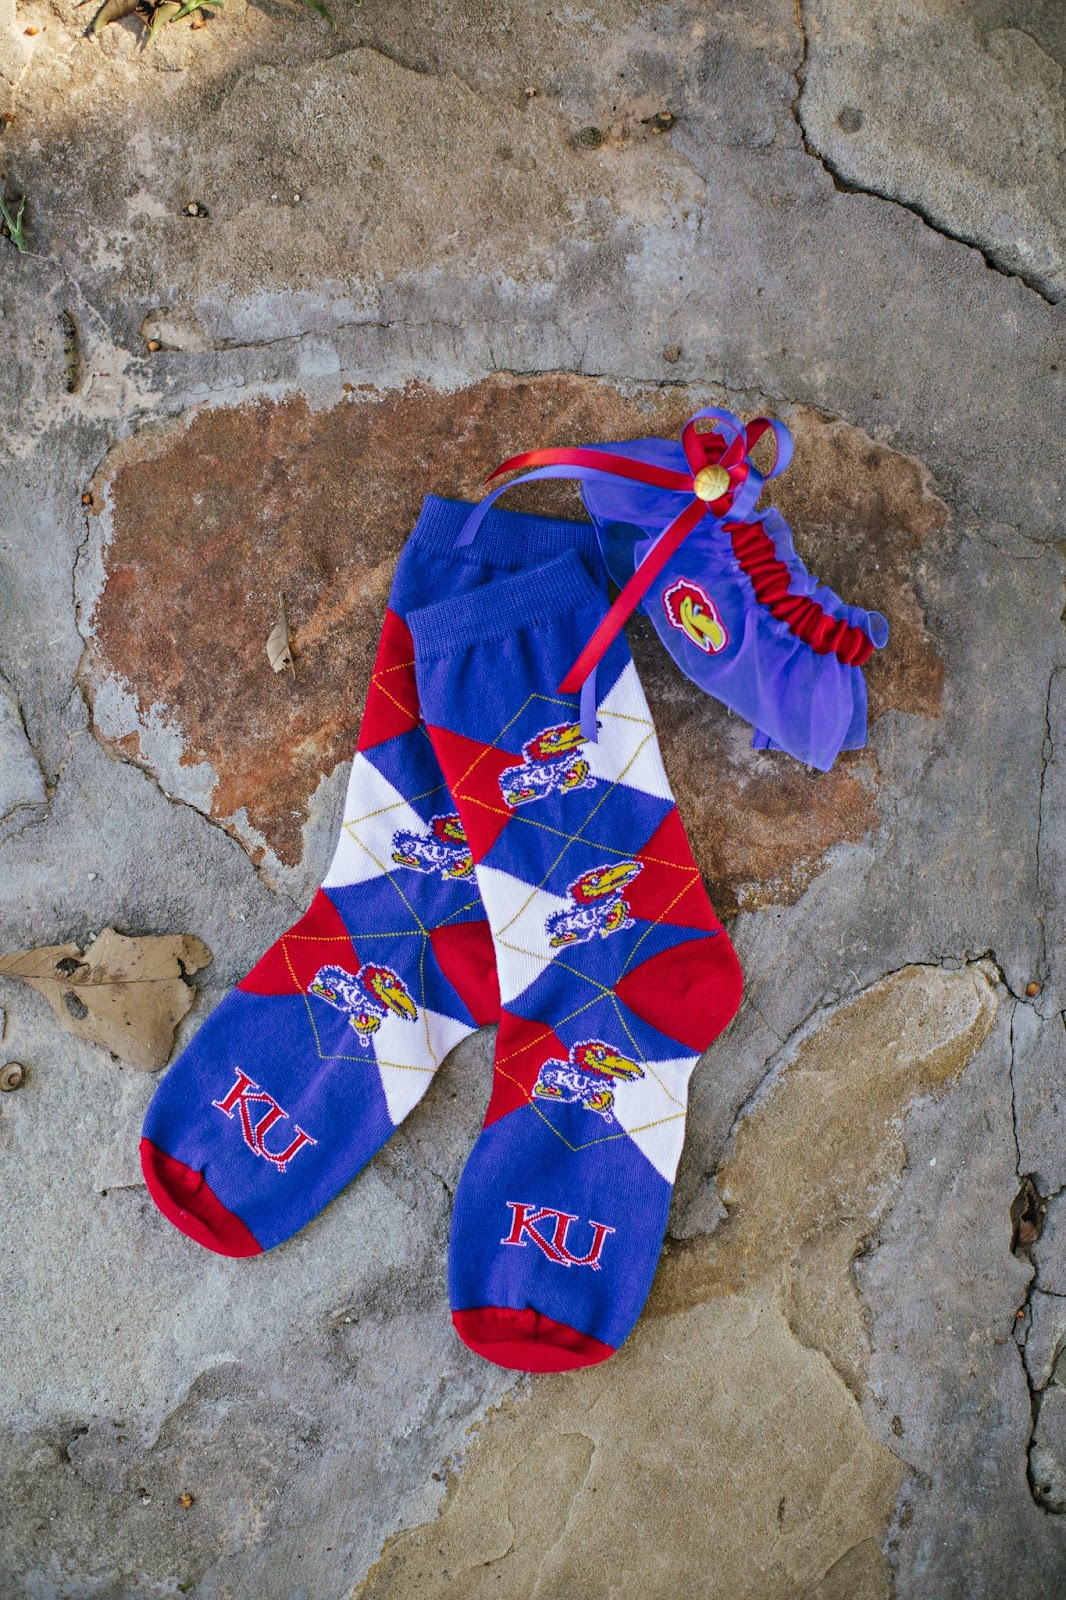 Jayhawk socks, Jayhawk garter, wedding tradition